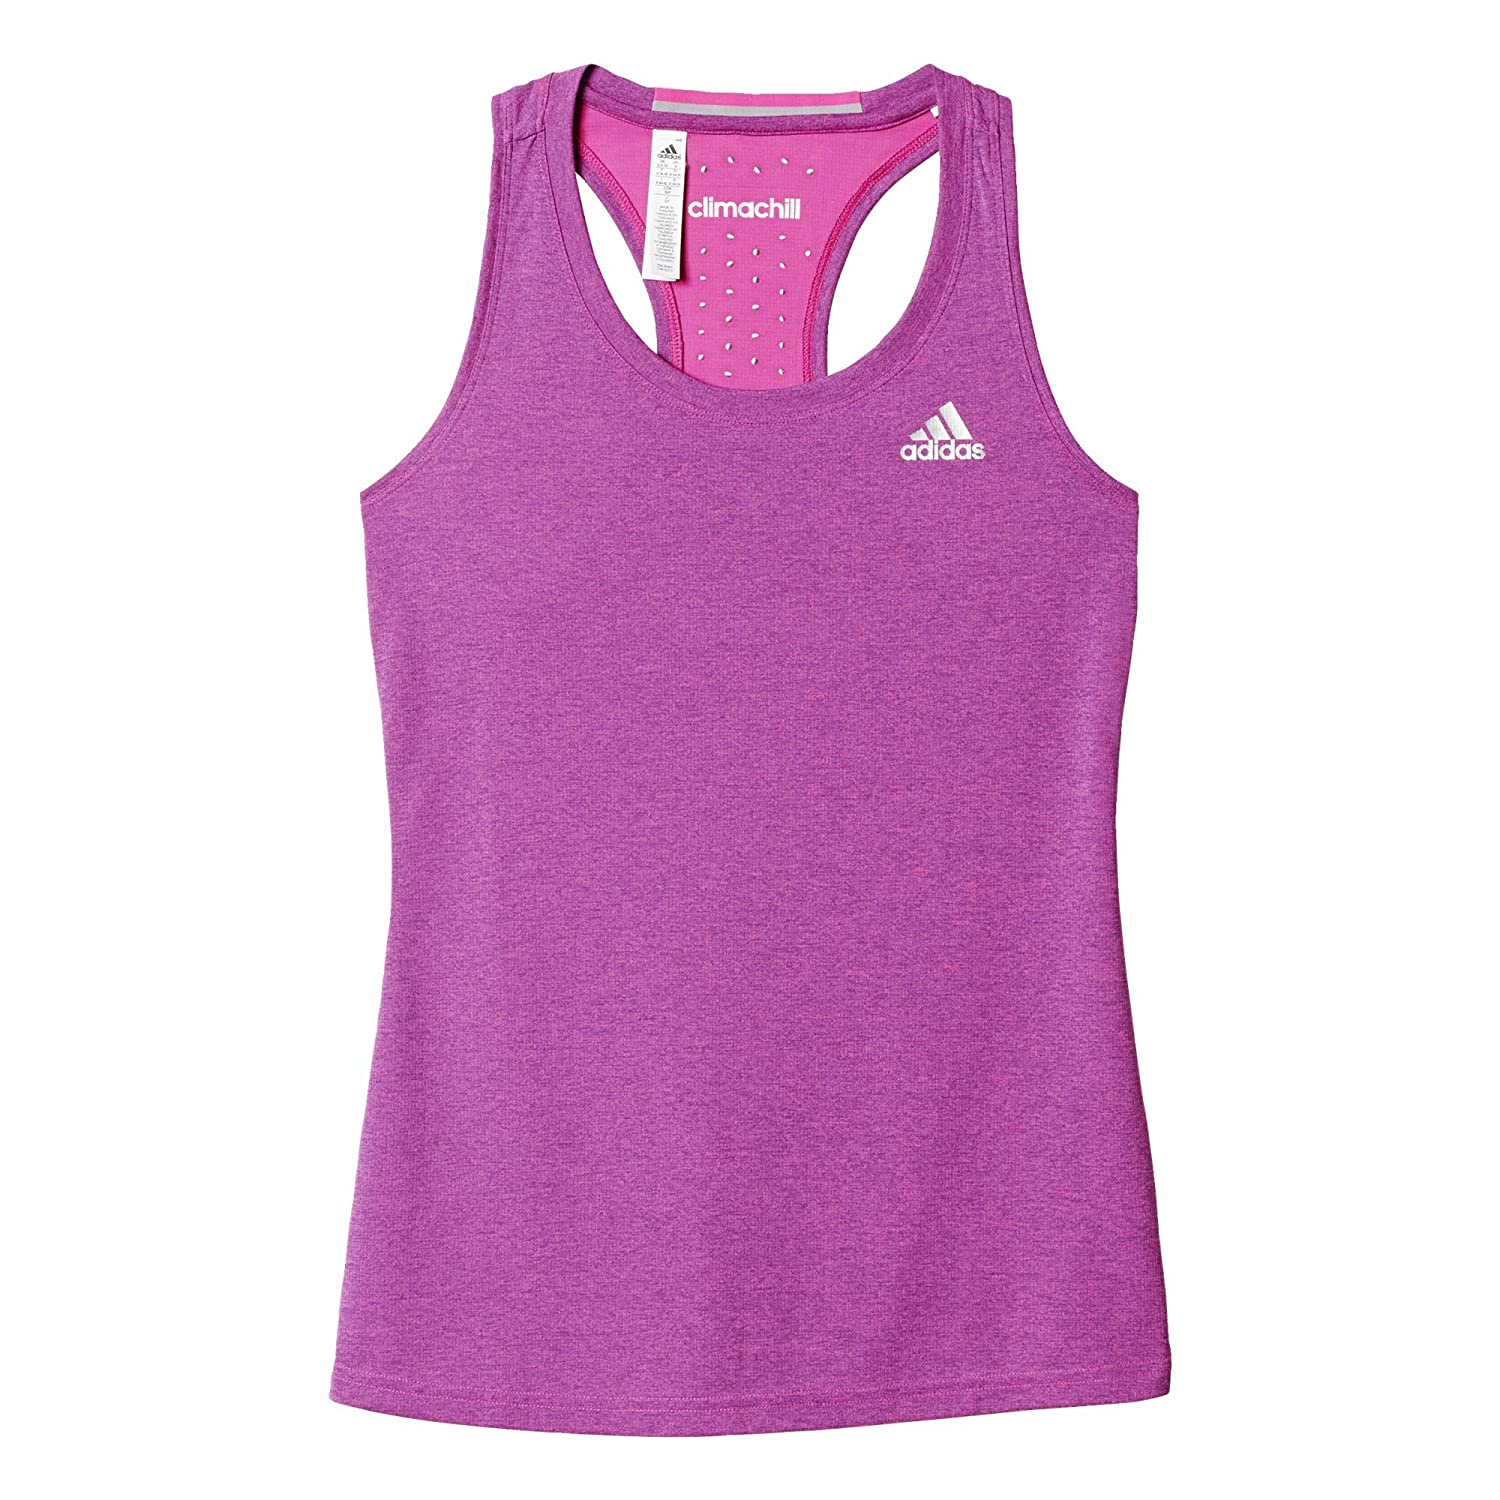 46c11b74dafe2 adidas Women's Climachill Tank Top at Amazon Women's Clothing store: